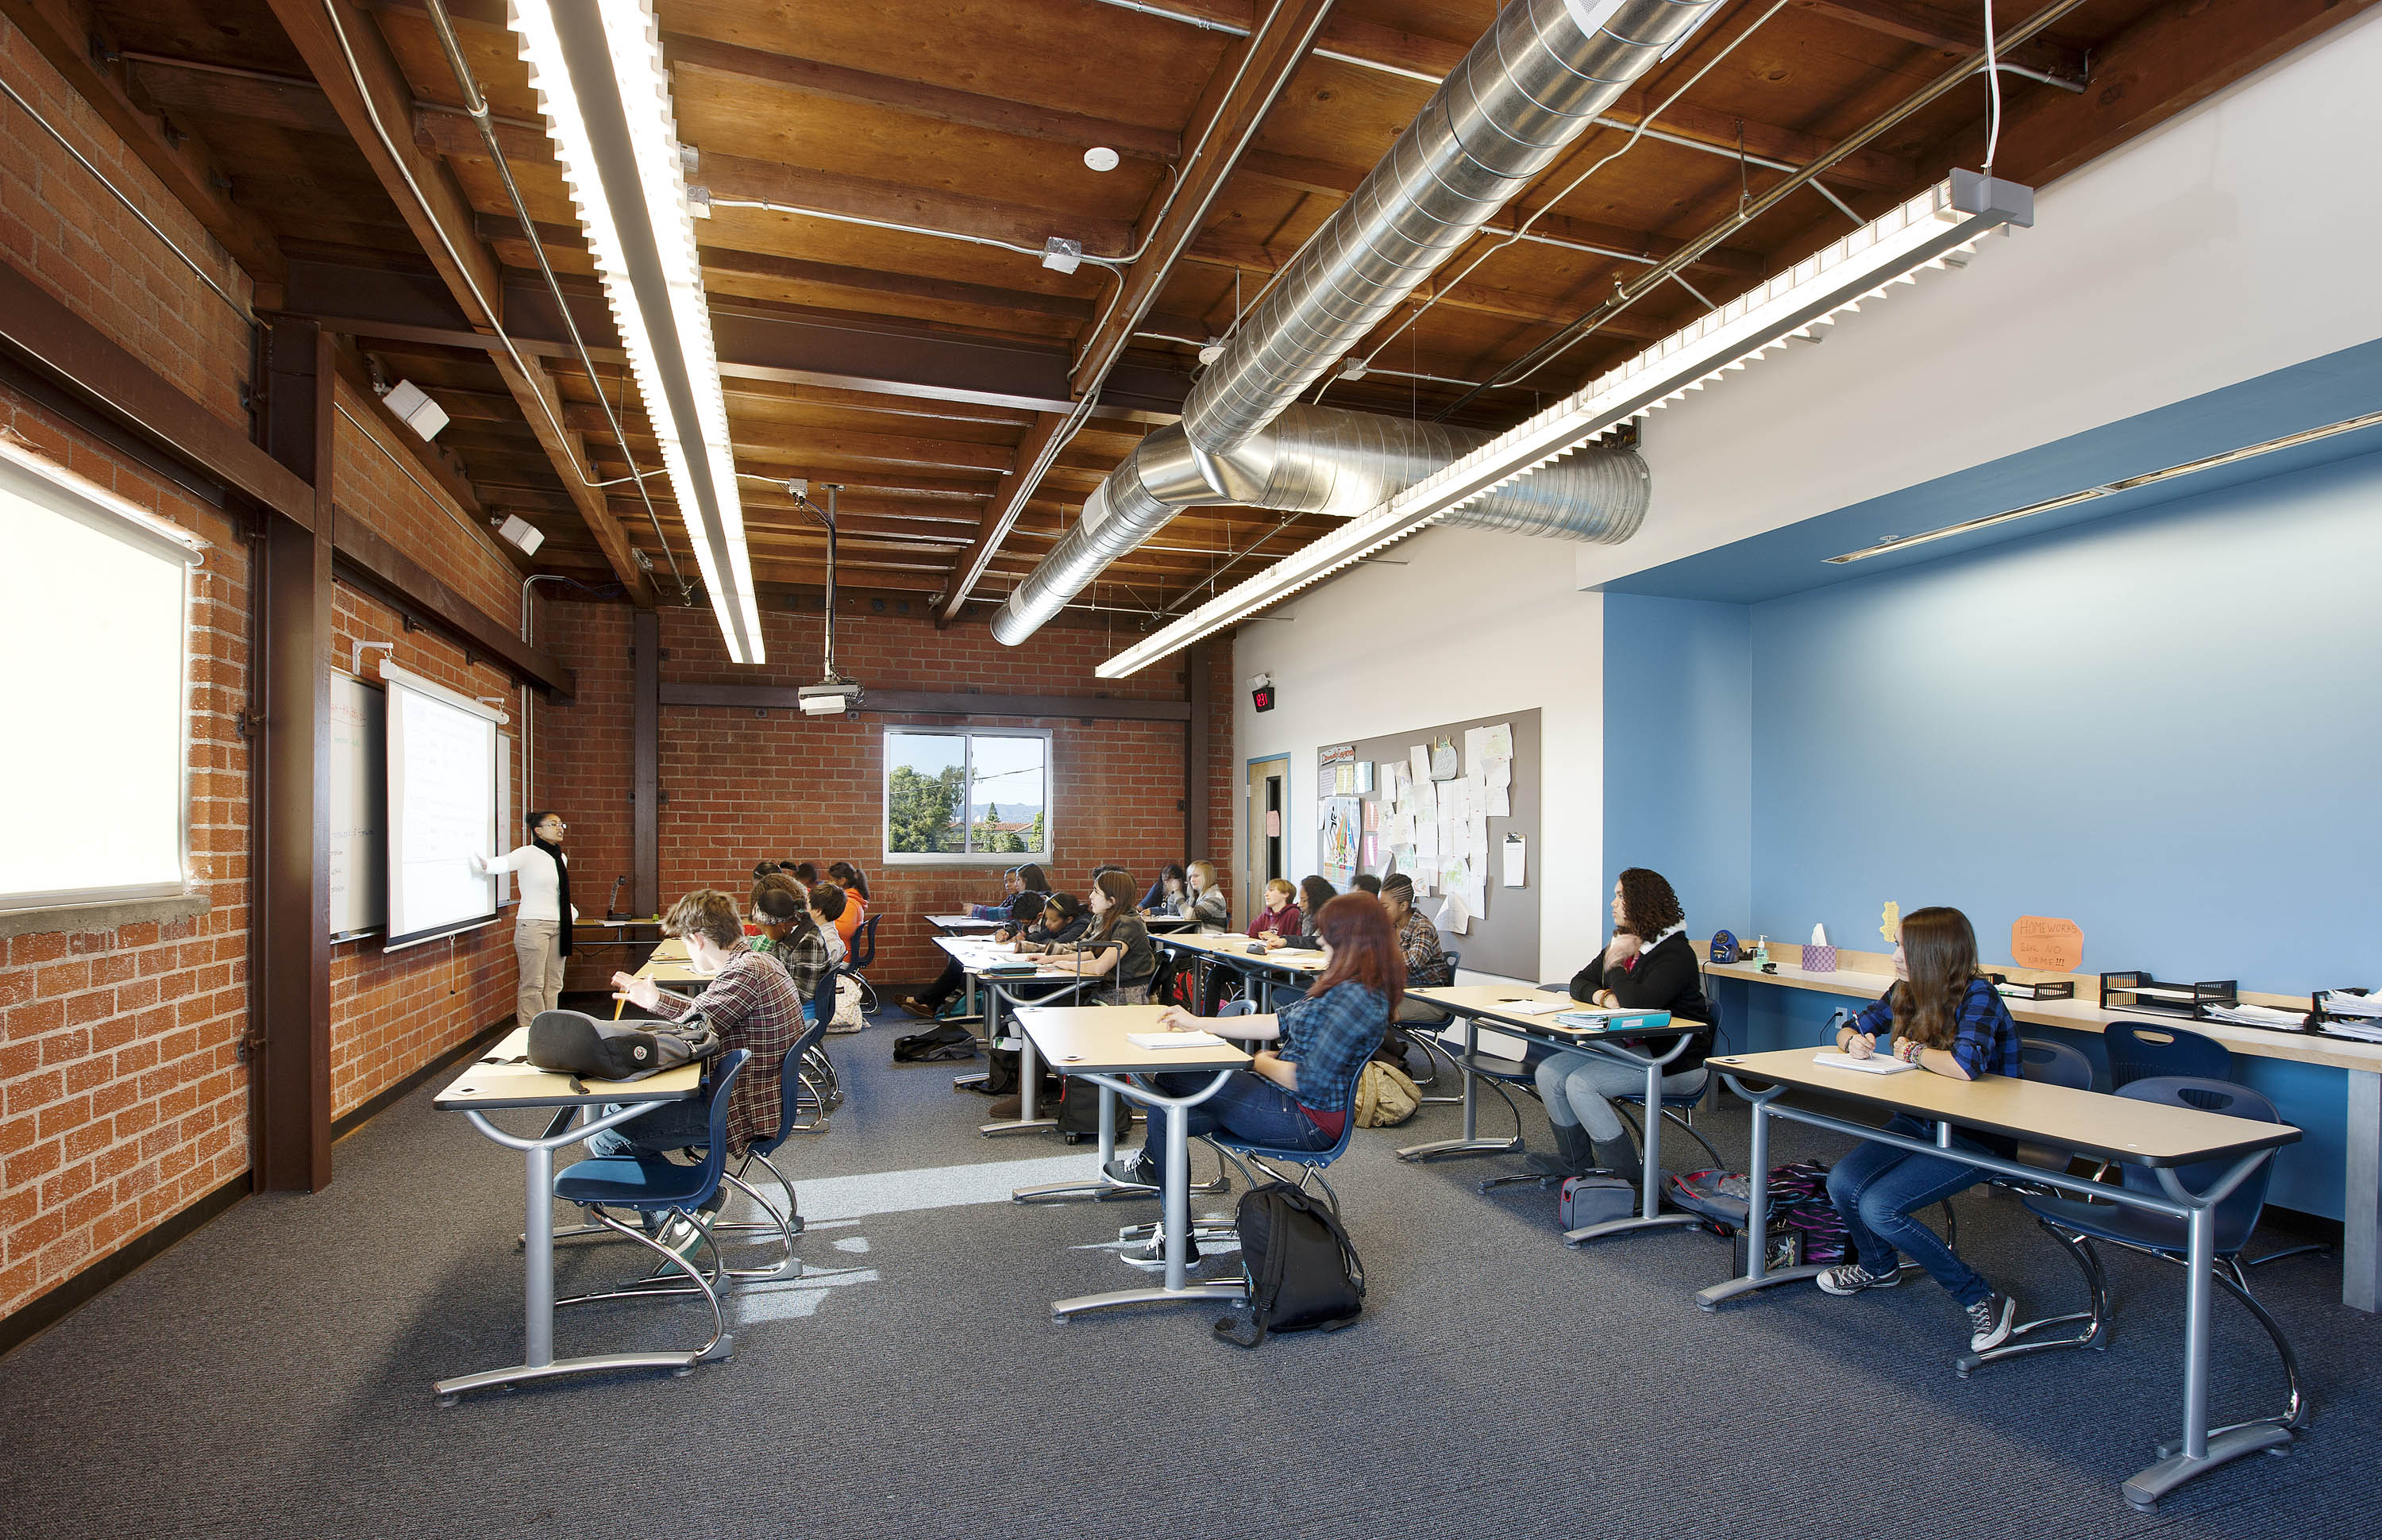 Classrooms are required to utilize partial-ON lighting controls